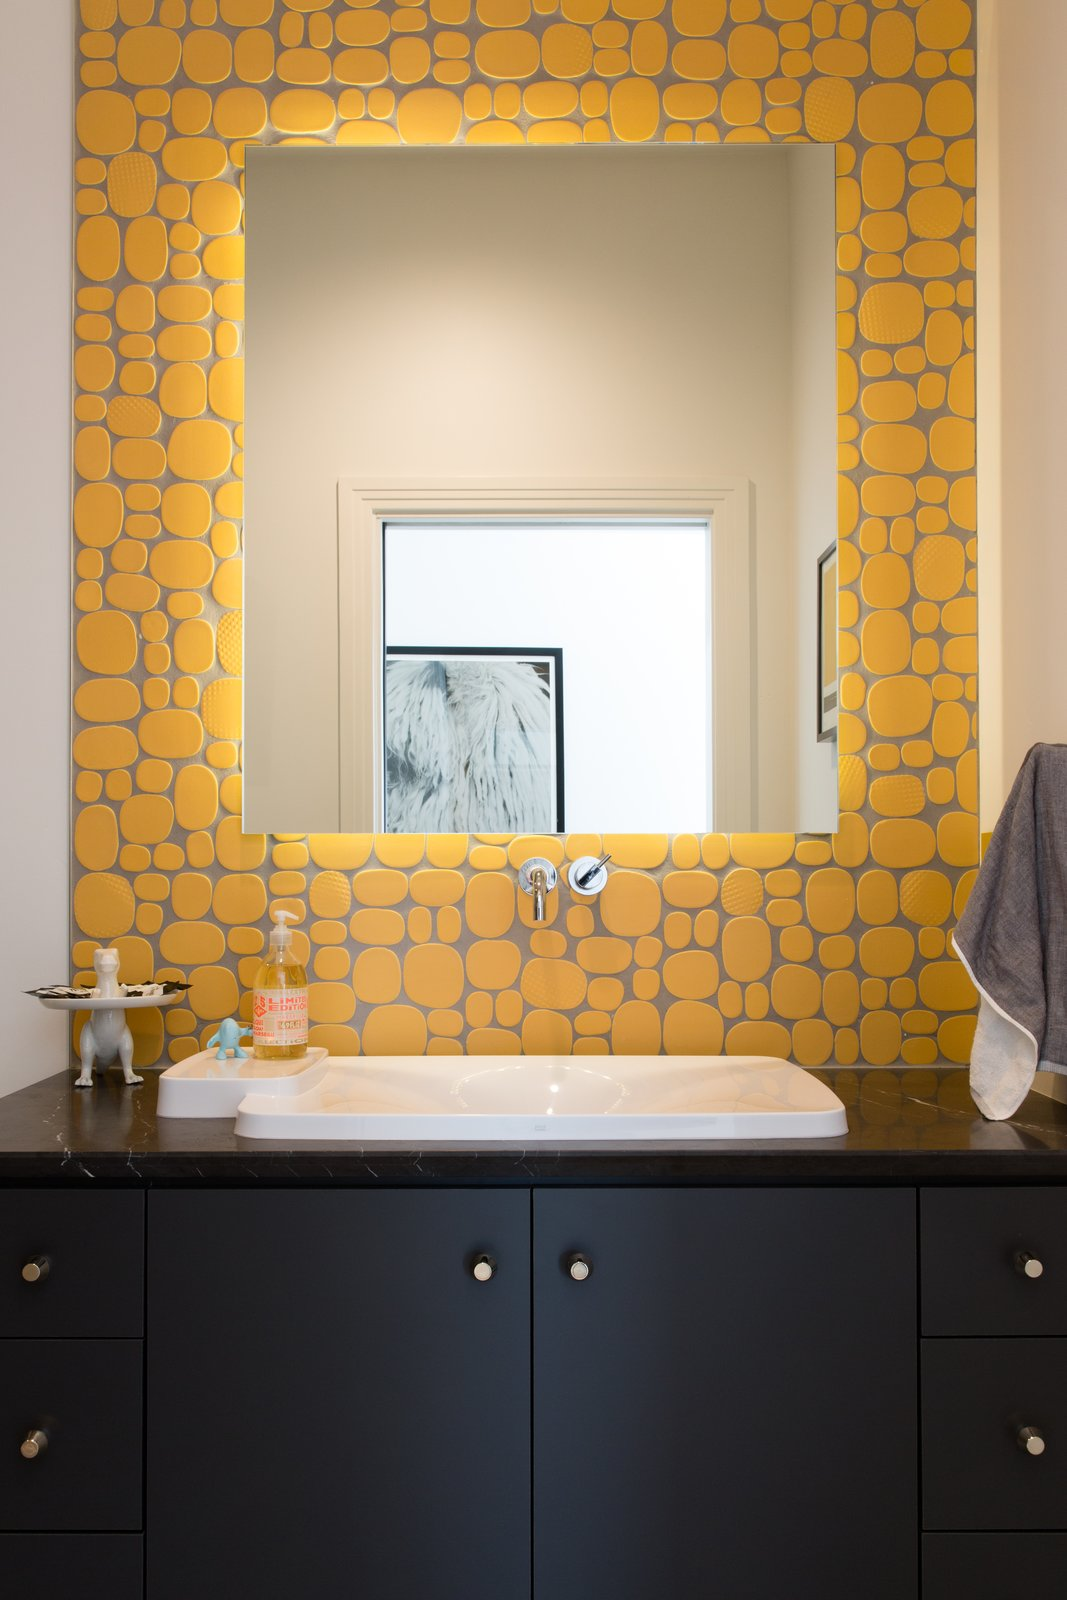 Lovely 12X24 Ceramic Floor Tile Tiny 16X16 Ceiling Tiles Square 2X2 Ceiling Tile 2X2 Ceiling Tiles Old 3 By 6 Subway Tile White3 X 6 Glass Subway Tile Photo 10 Of 10 In A Guide To Ceramic Versus Porcelain Tile   Dwell